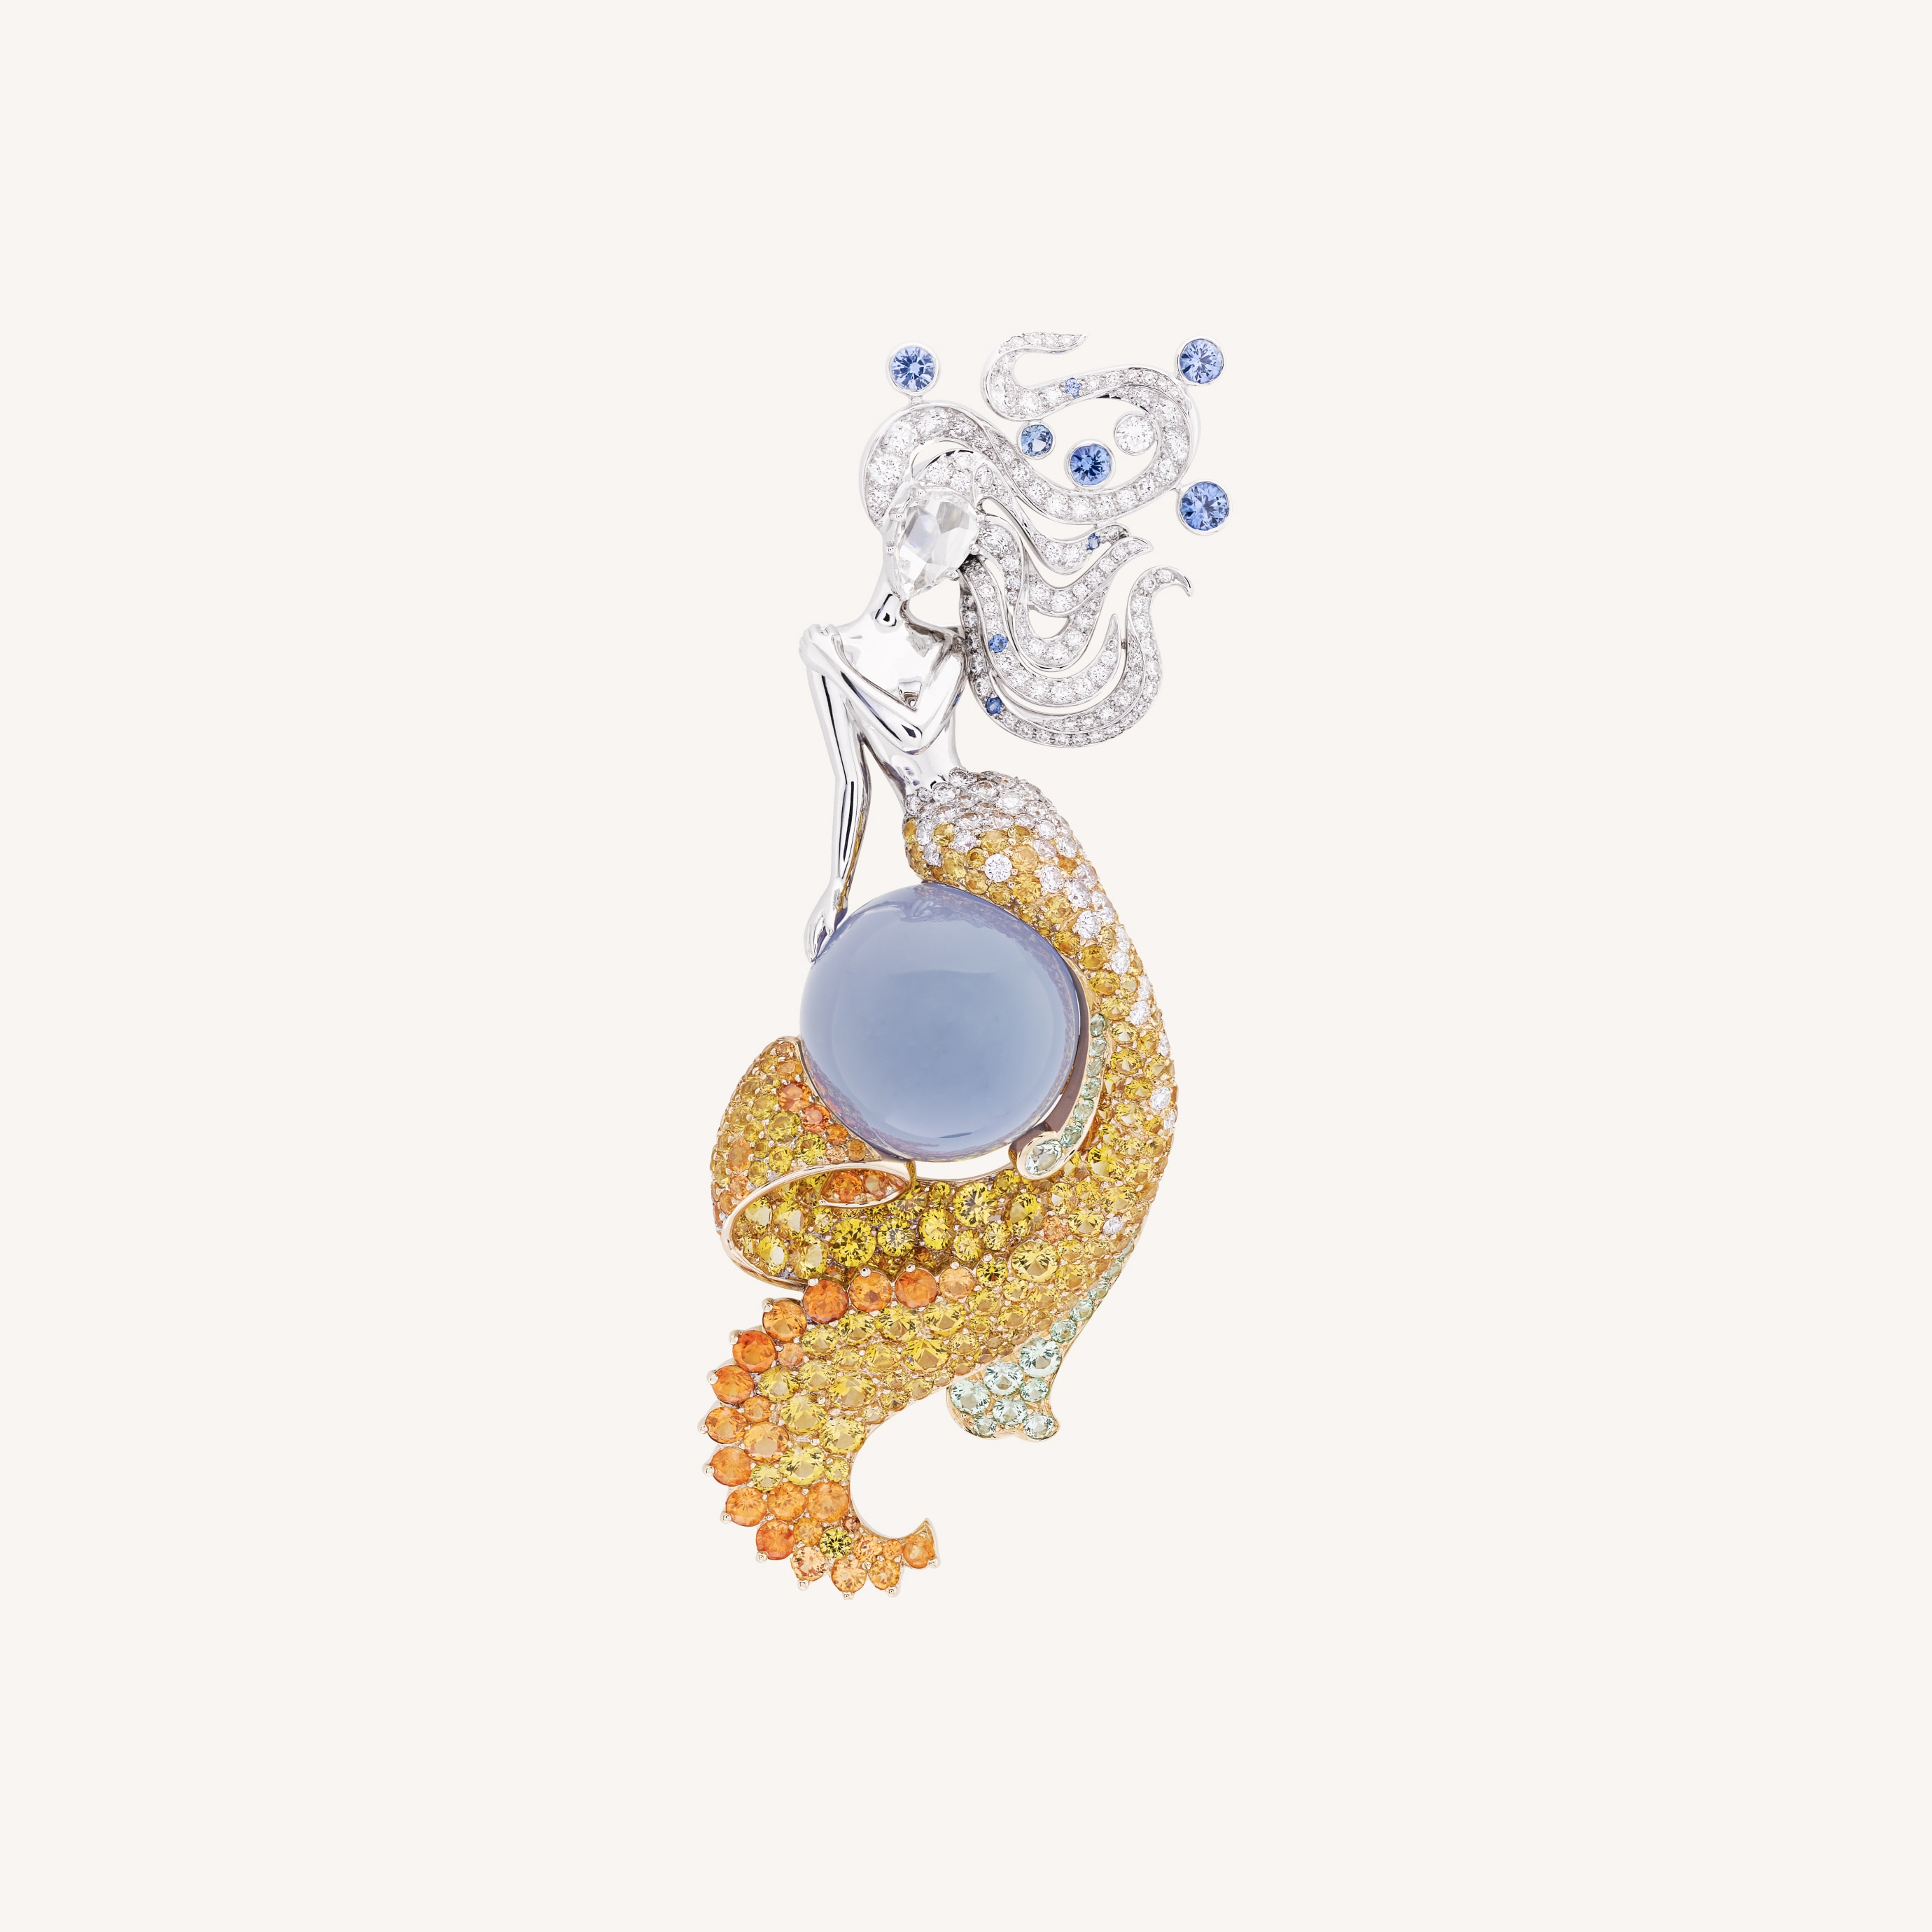 Fée des Mers clip, White gold, round and rose-cut diamonds, round blue sapphires, yellow gold, round yellow sapphires, round spessartite garnets, round grossular garnets, one 23.64-carat cabochon-cut chalcedony, Seven Seas™ Collection, Van Cleef & Arpels